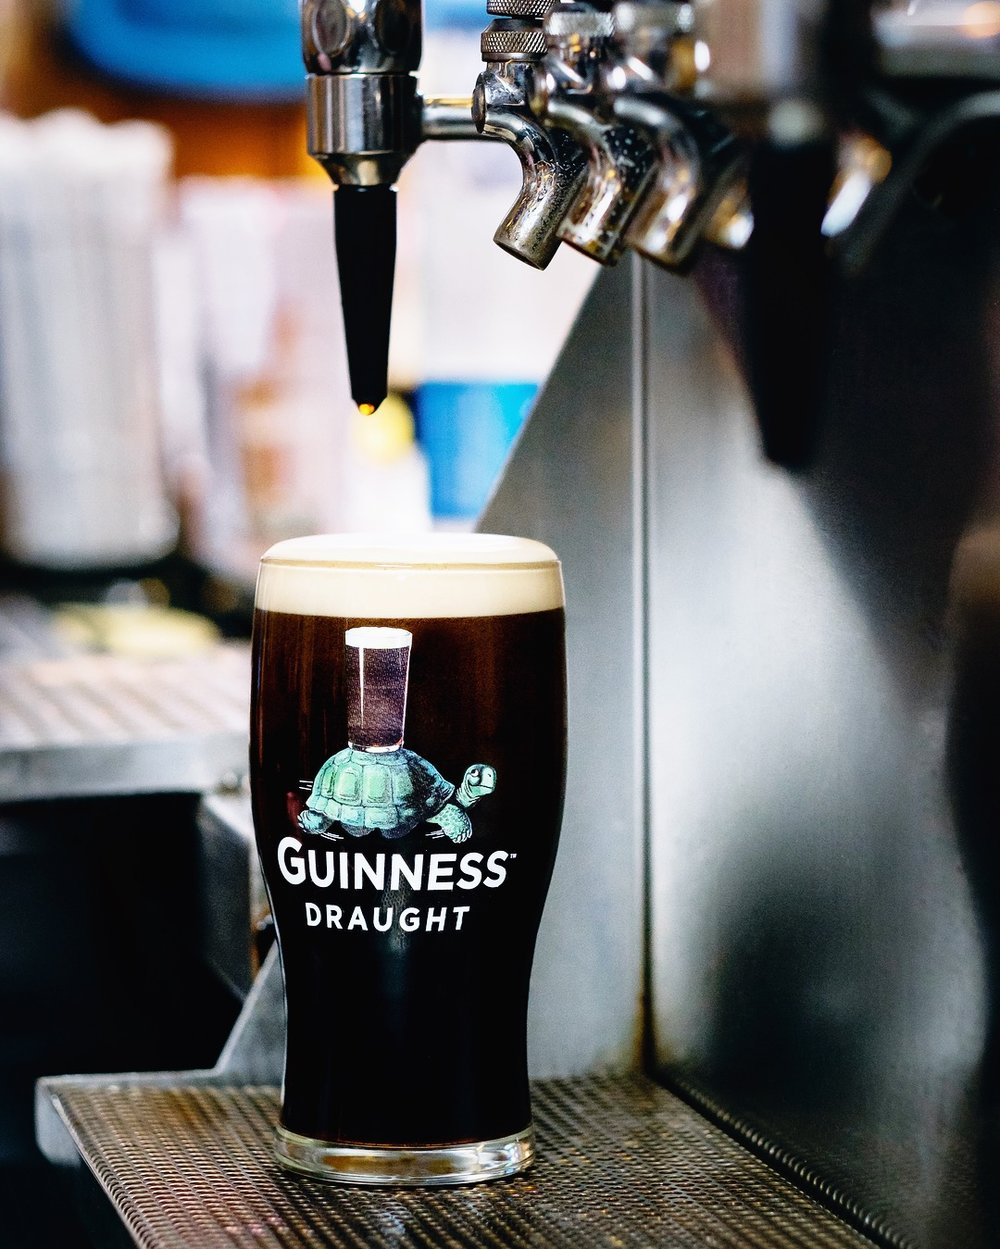 Instagram.com/Joe Ferraro photo - In search of the perfect pour this holiday season? I hear the taps at The Irish Cottage in #methuen pours a mean pint - into vintage-inspired #guinness glasses, no less. Be safe tomorrow! #sláinte #stpatricksday #stpattysday #beer #publife #whatsontap